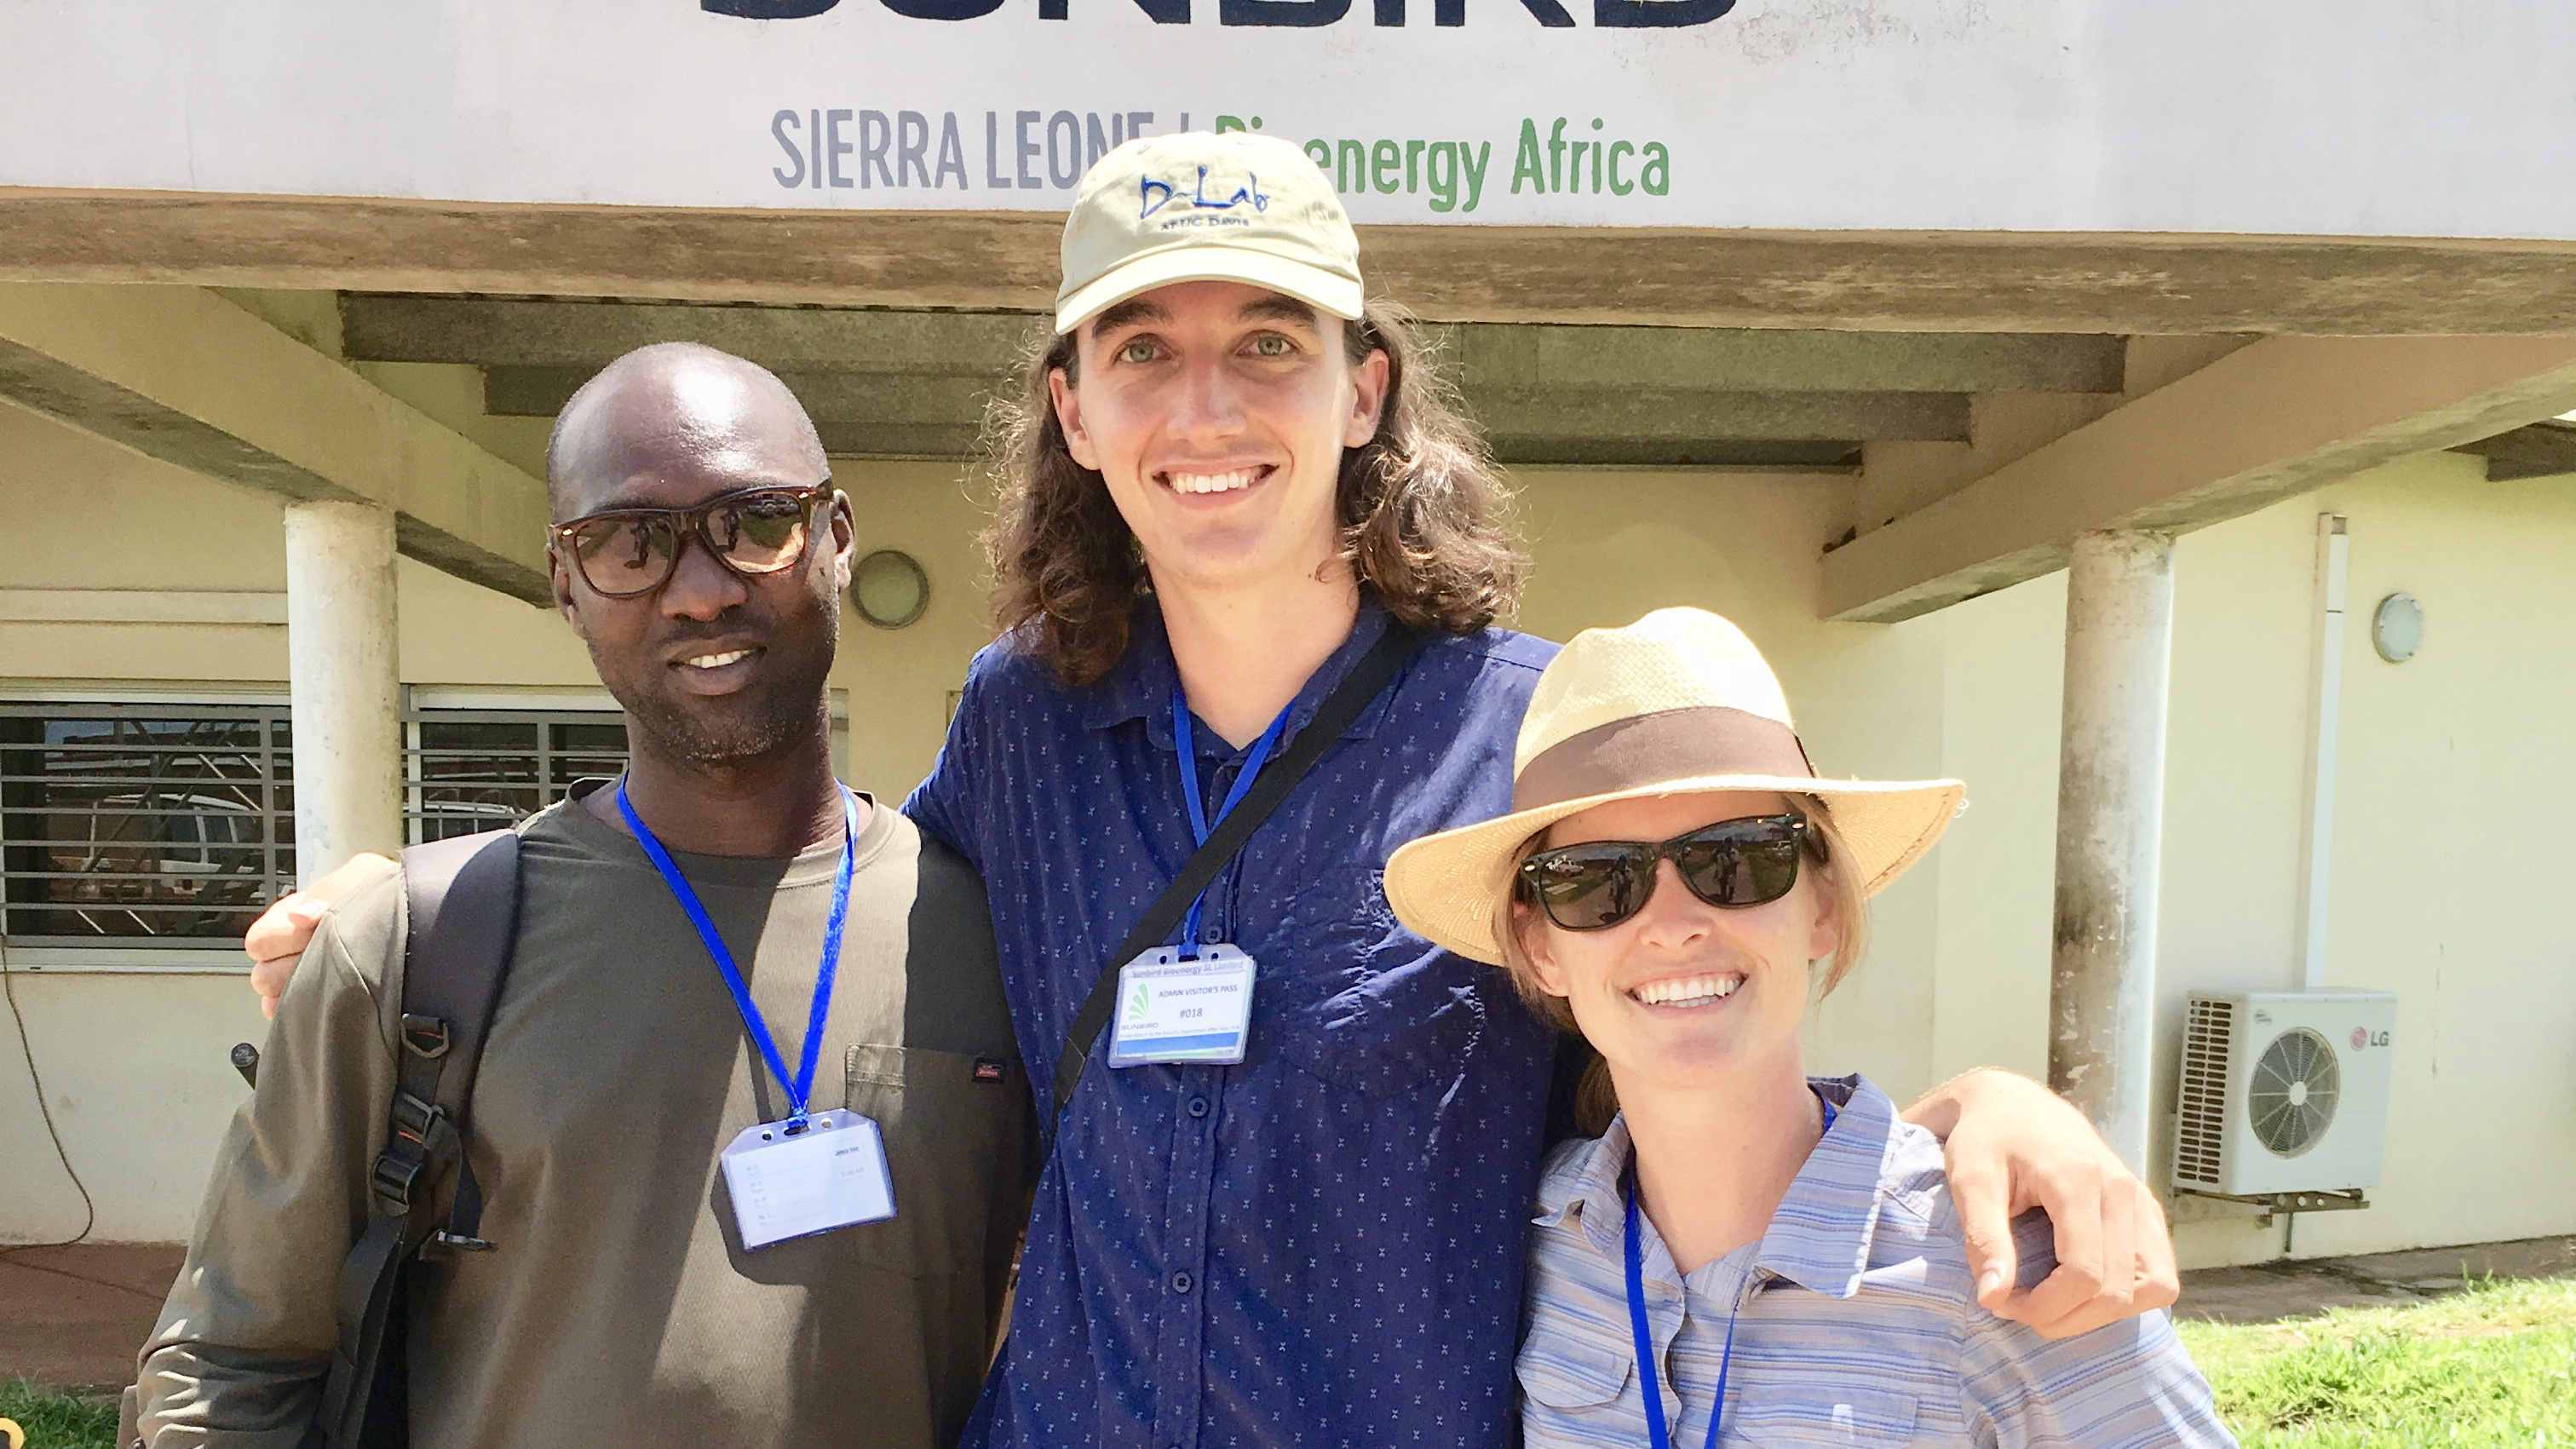 Martin Kailie, Peter Nasielski, and Dana Armstrong in Sierra Leone.